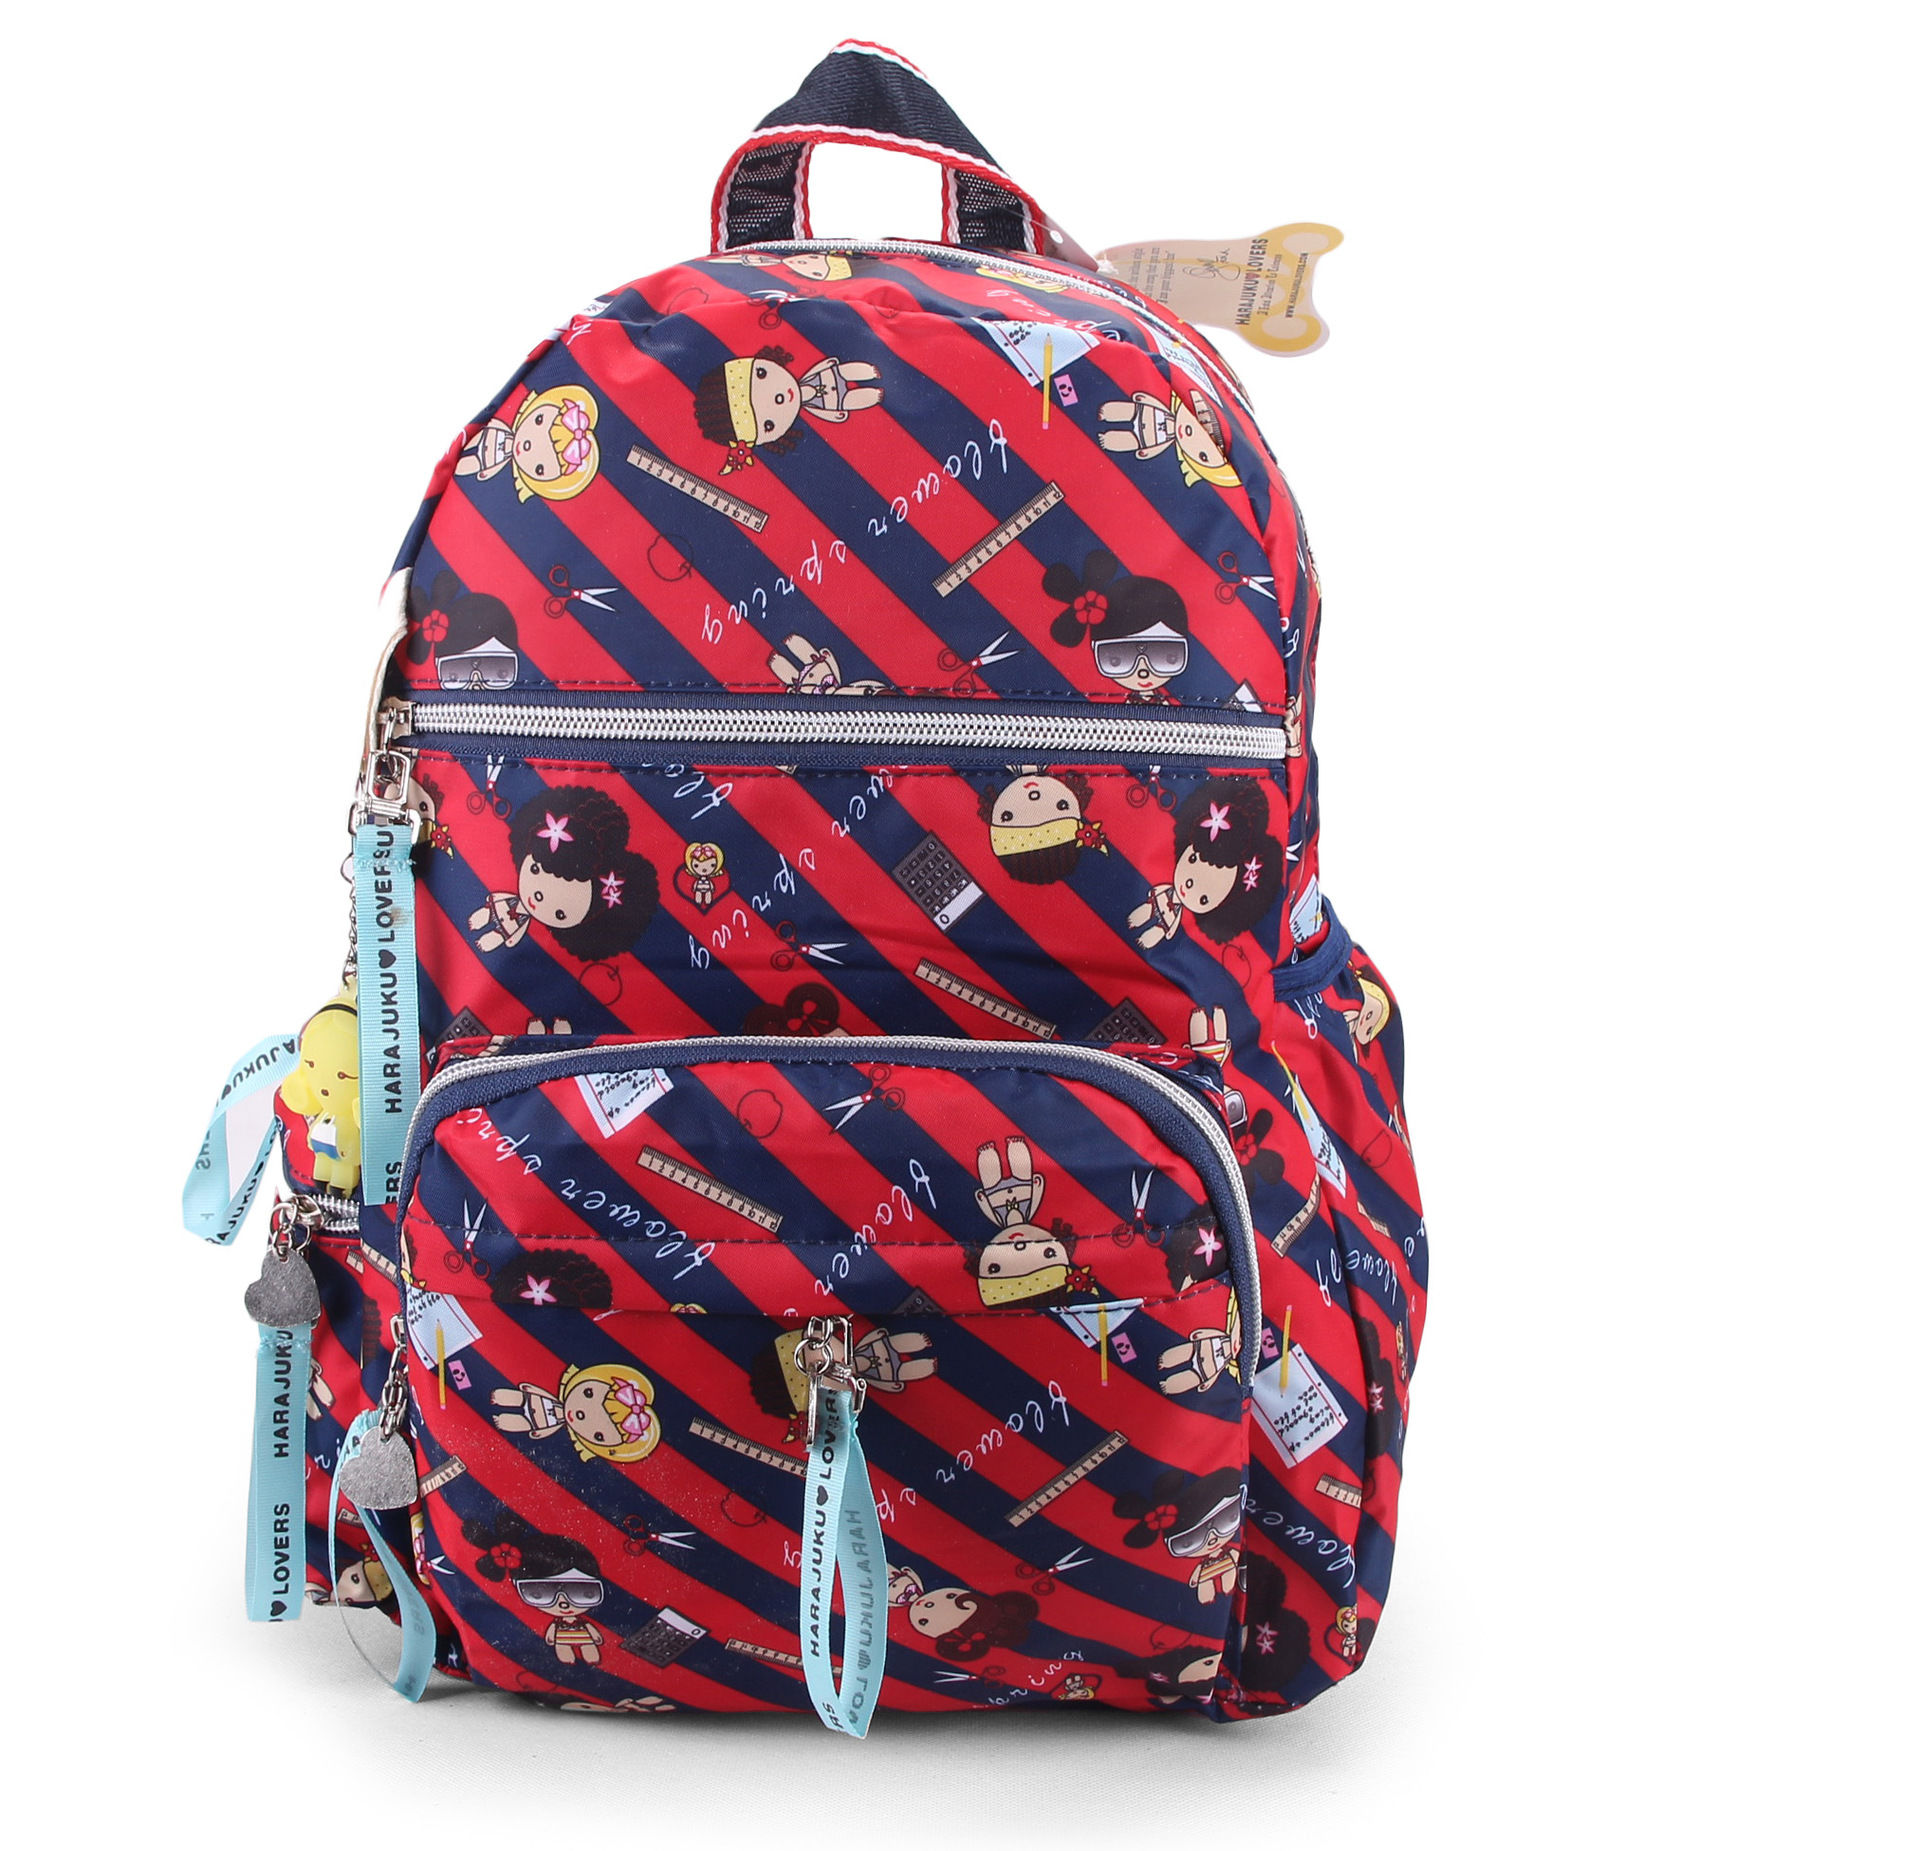 [Harajuku doll] backpack student schoolbag waterproof cloth bag multi color cute small backpack for men and women